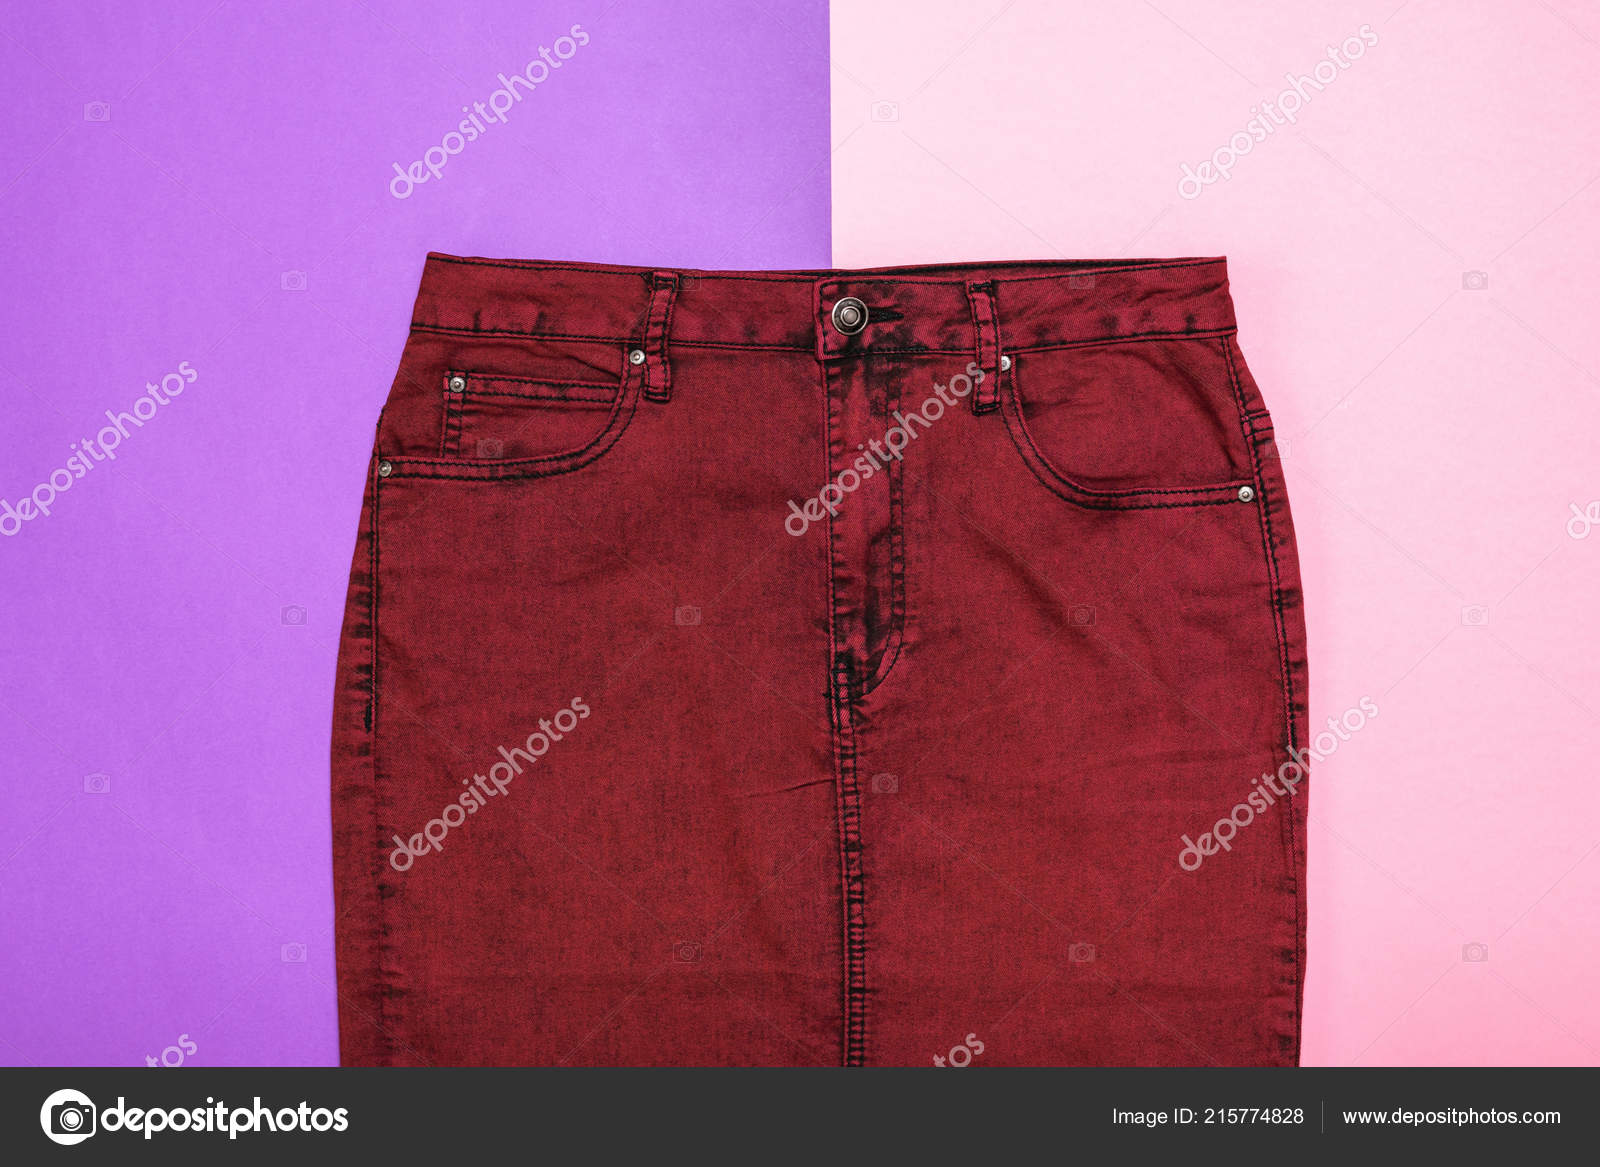 7eb48dbd5 Burgundy denim skirt on two colors background. Fashionable denim women's  clothing. Denim women's clothing on colored background.